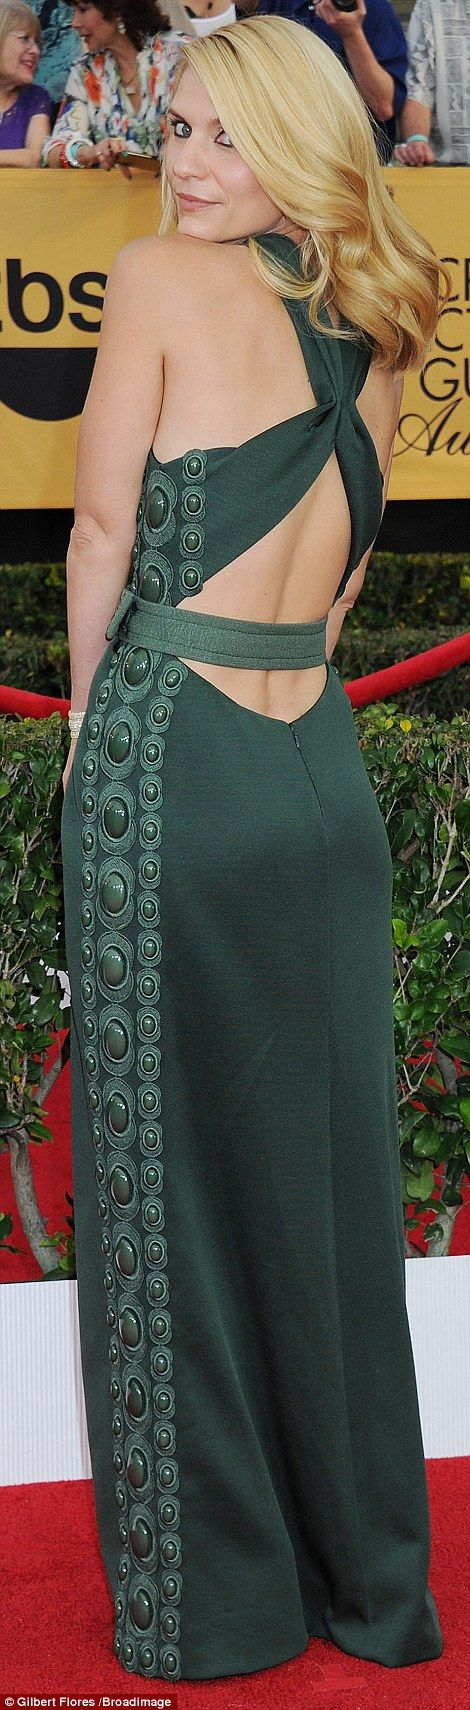 Green goddess: Claire Danes chose a backless moss gown with crossover detail